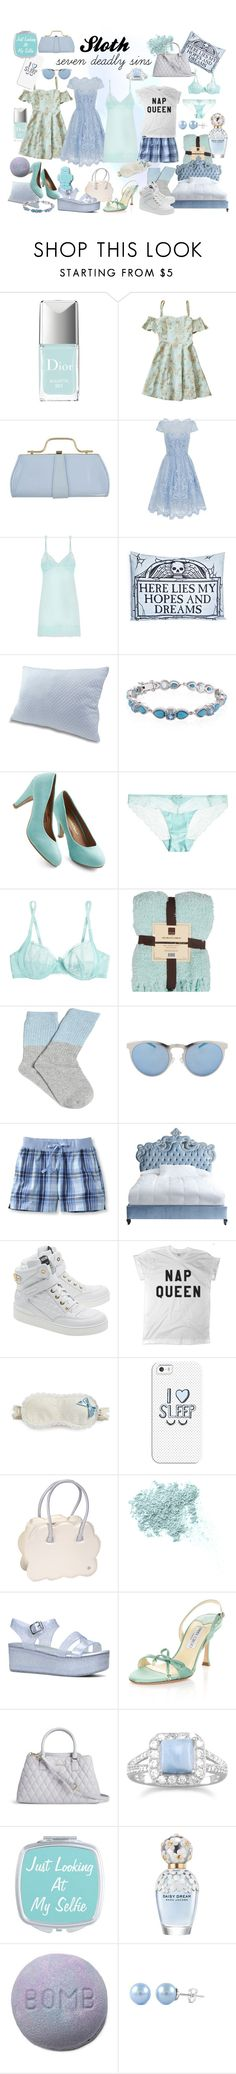 """Sloth"" by teenageprincessgirl ❤ liked on Polyvore featuring Christian Dior, Chi Chi, Heidi Klum Intimates, Sourpuss, Illesteva, L.L.Bean, Haute House, Moschino, L'Agent By Agent Provocateur and Casetify"